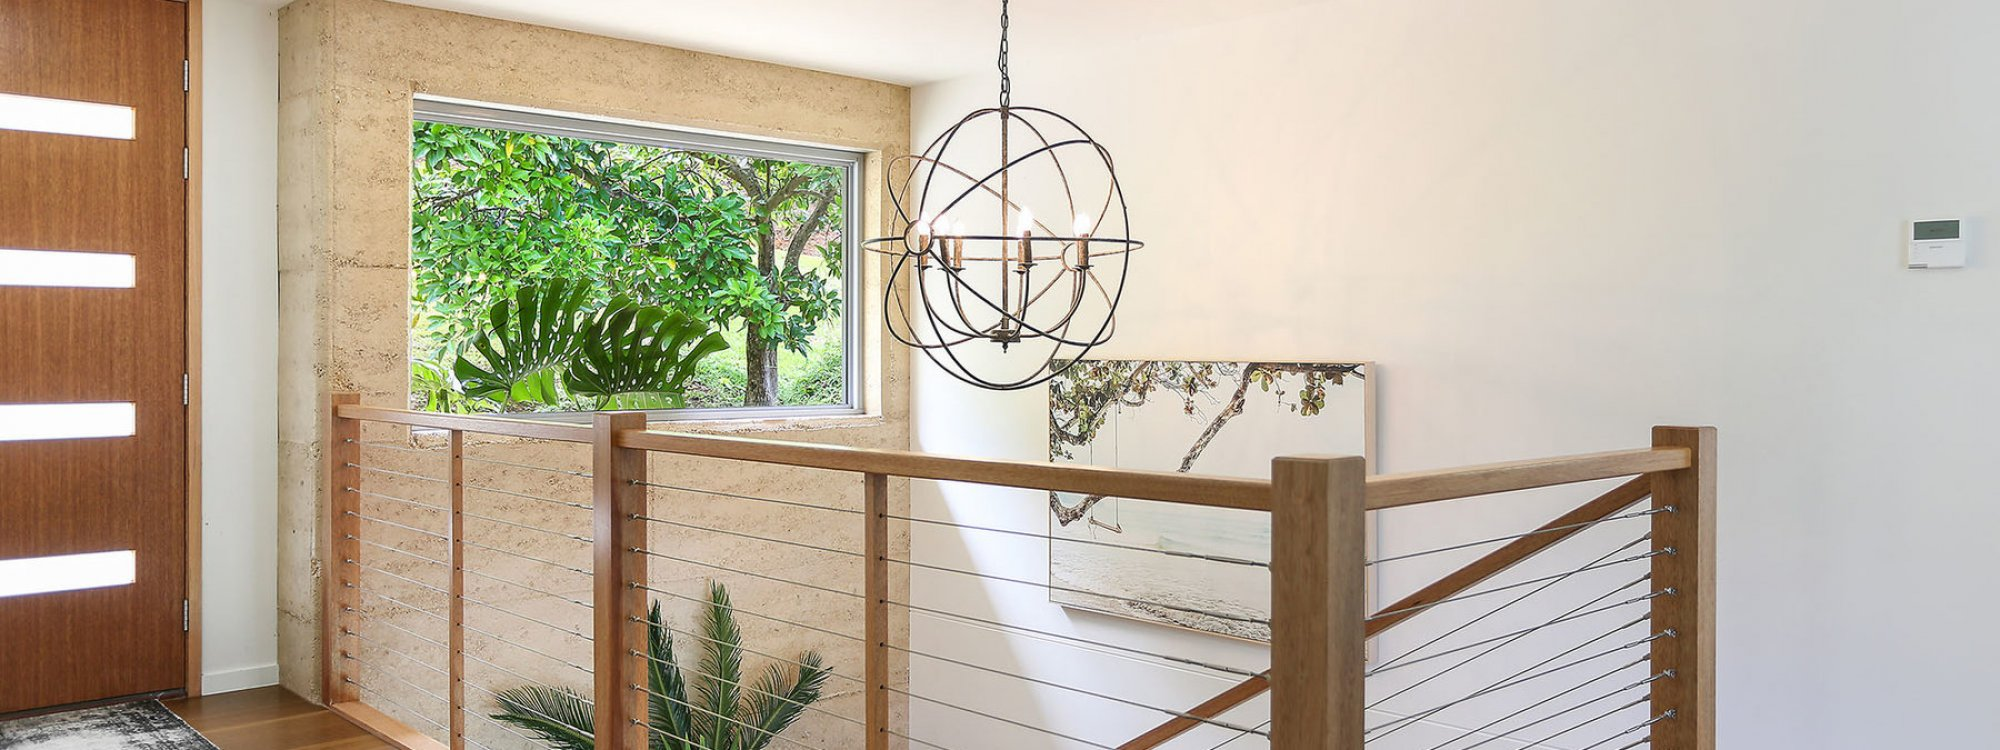 Currumbin Heights - Currumbin - Entrance and Stairs